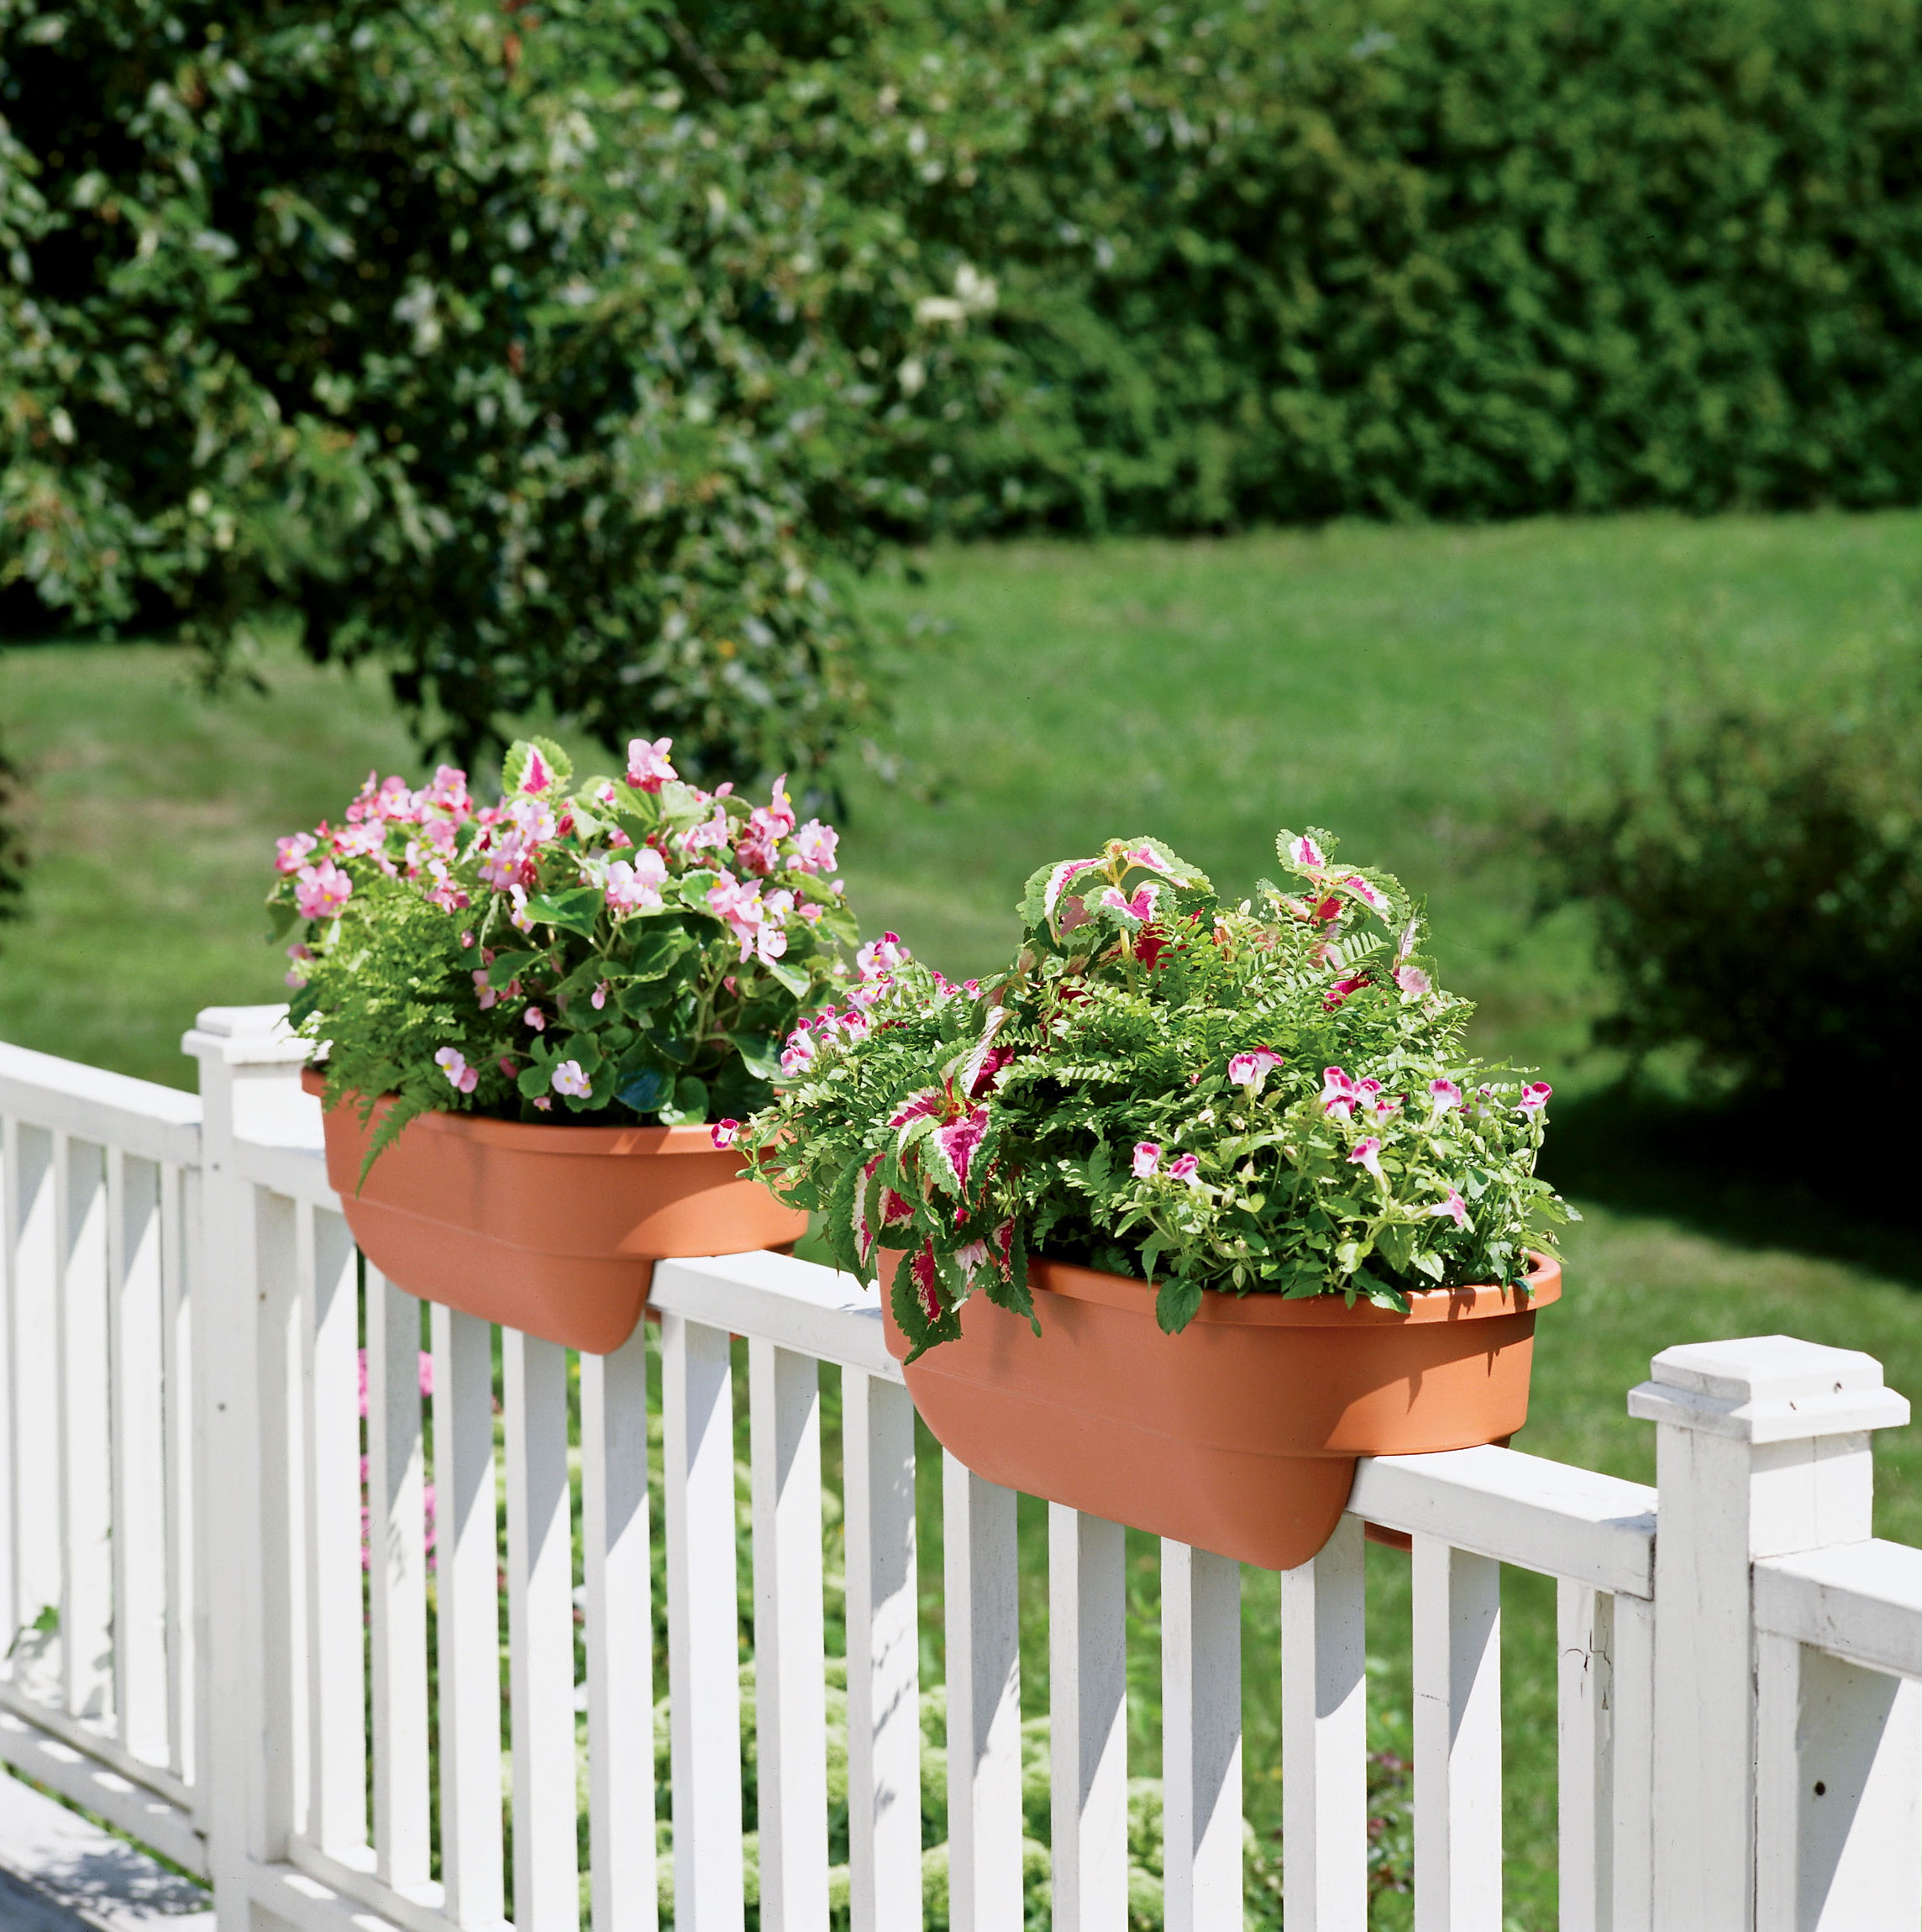 Modern Railing Planters Custom By Rushton: Deck Railing Planters White